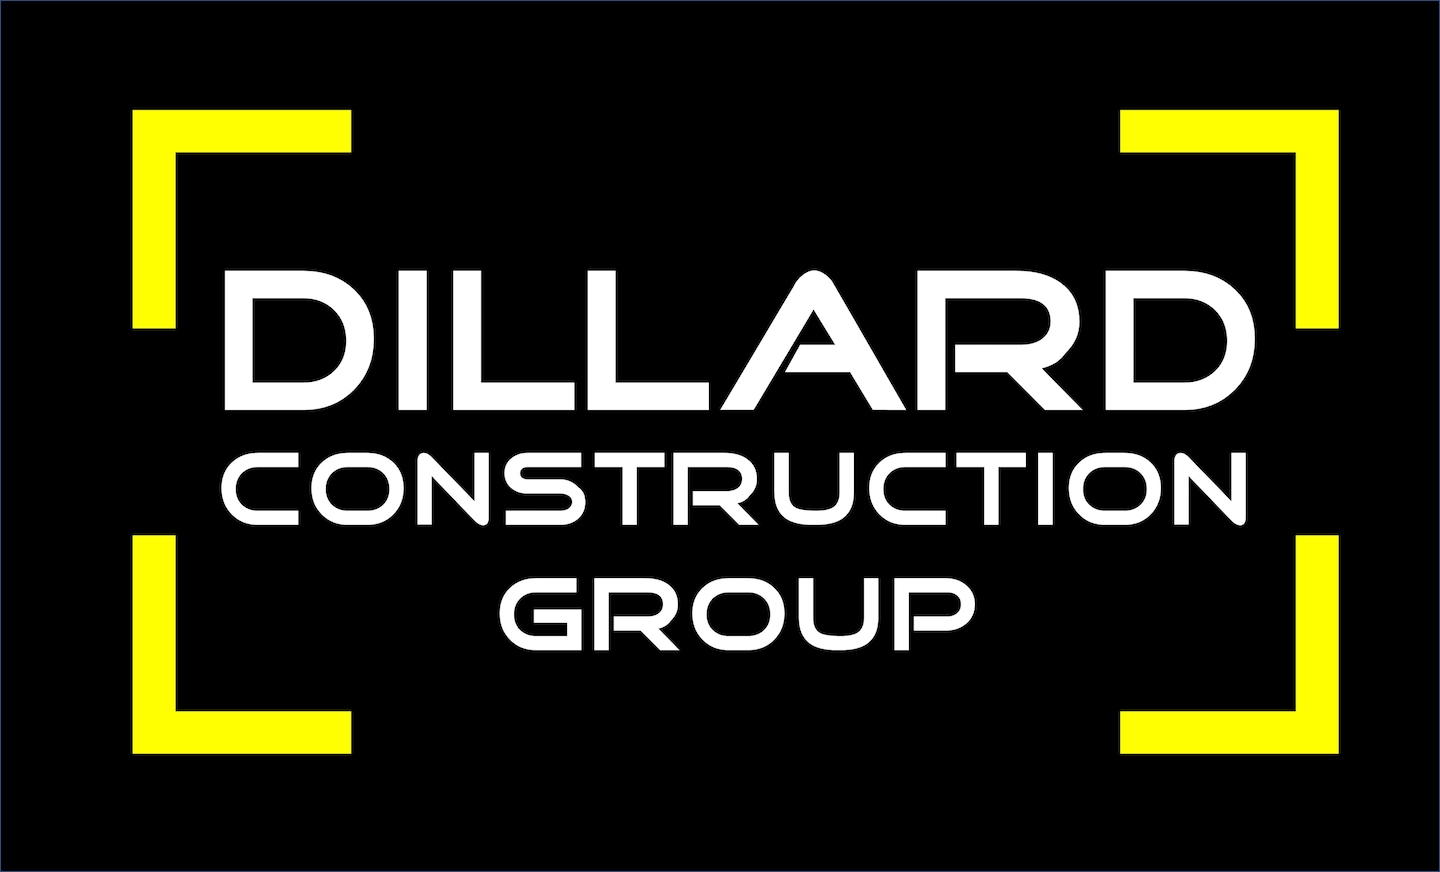 Dillard Construction Group LLC